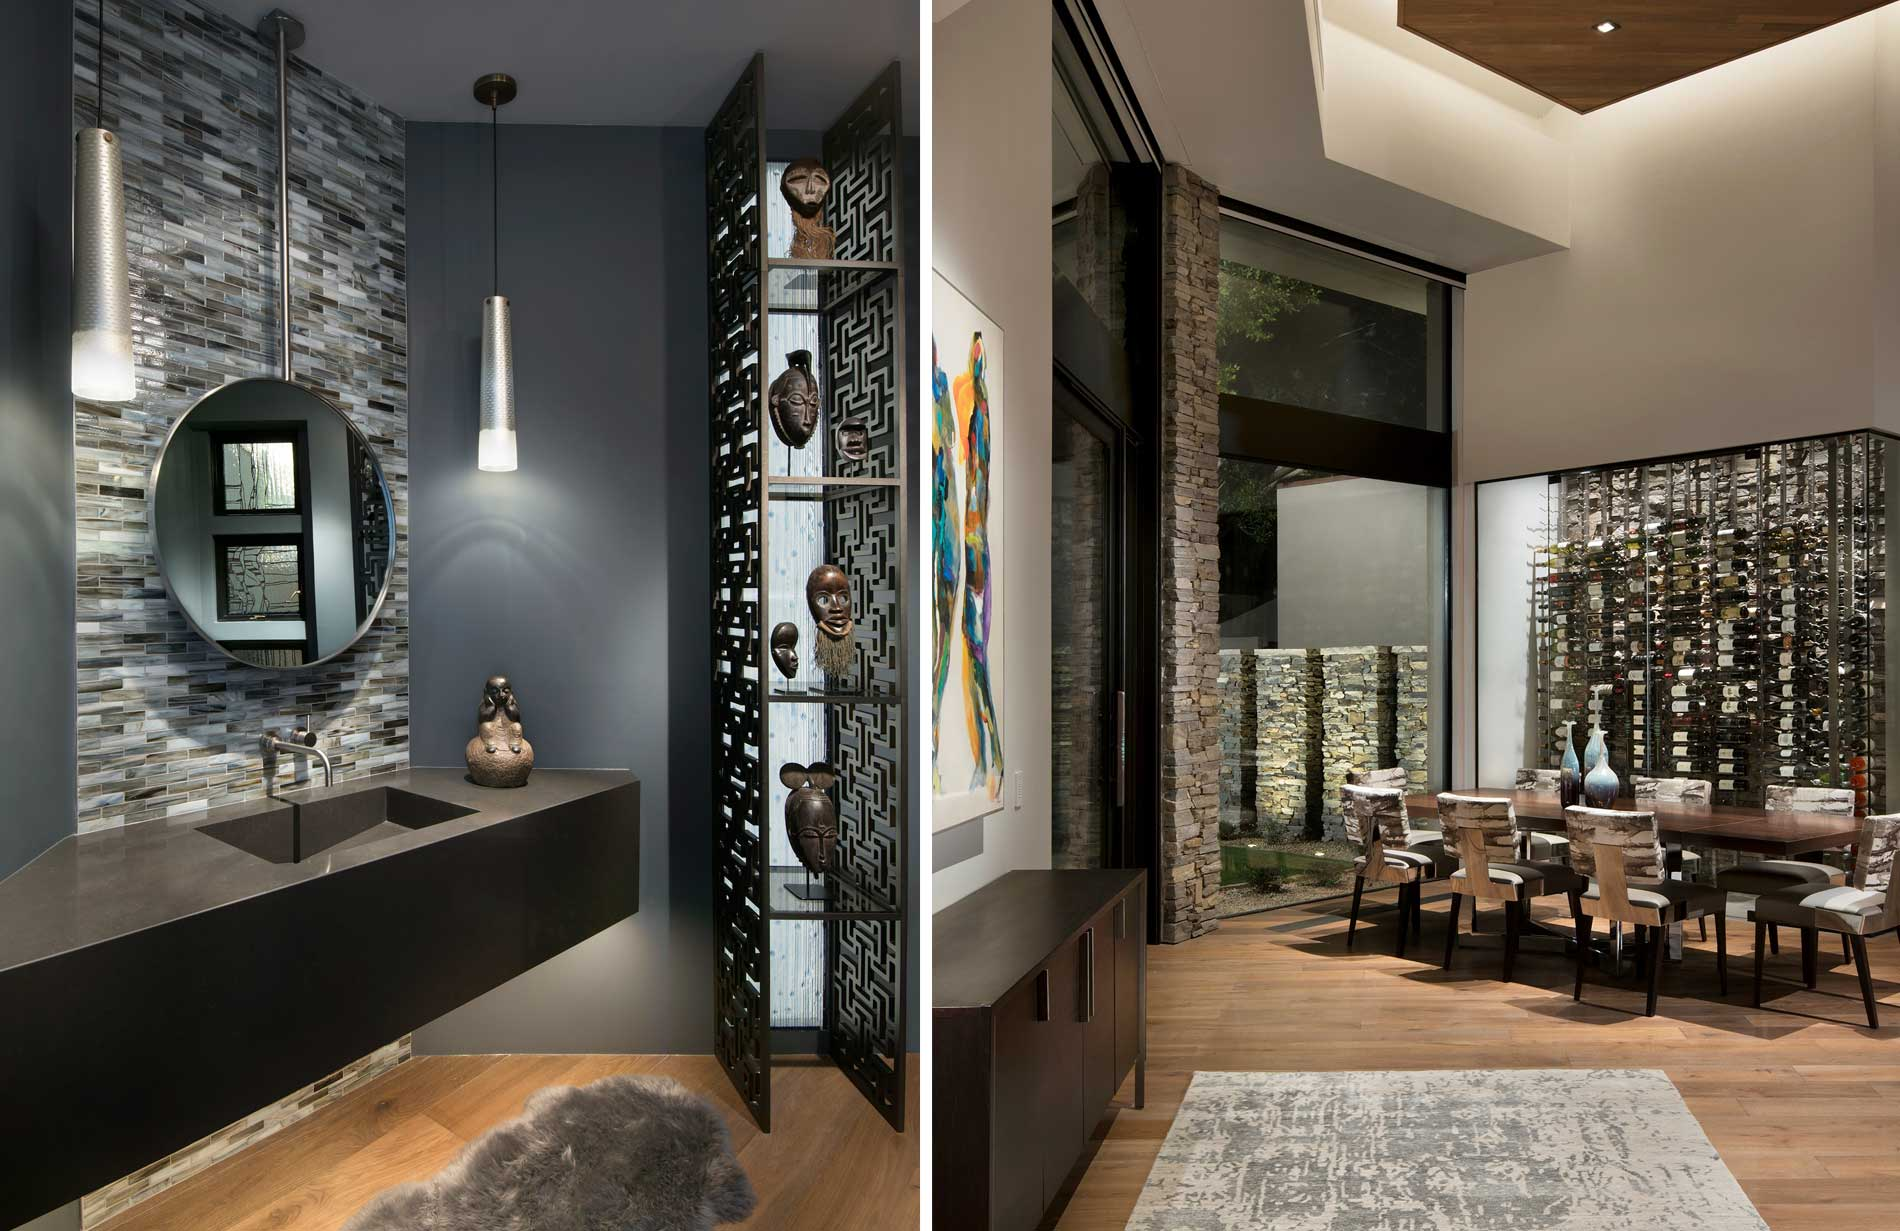 Easy Interior Design Ways to Make a Statement in Your Home